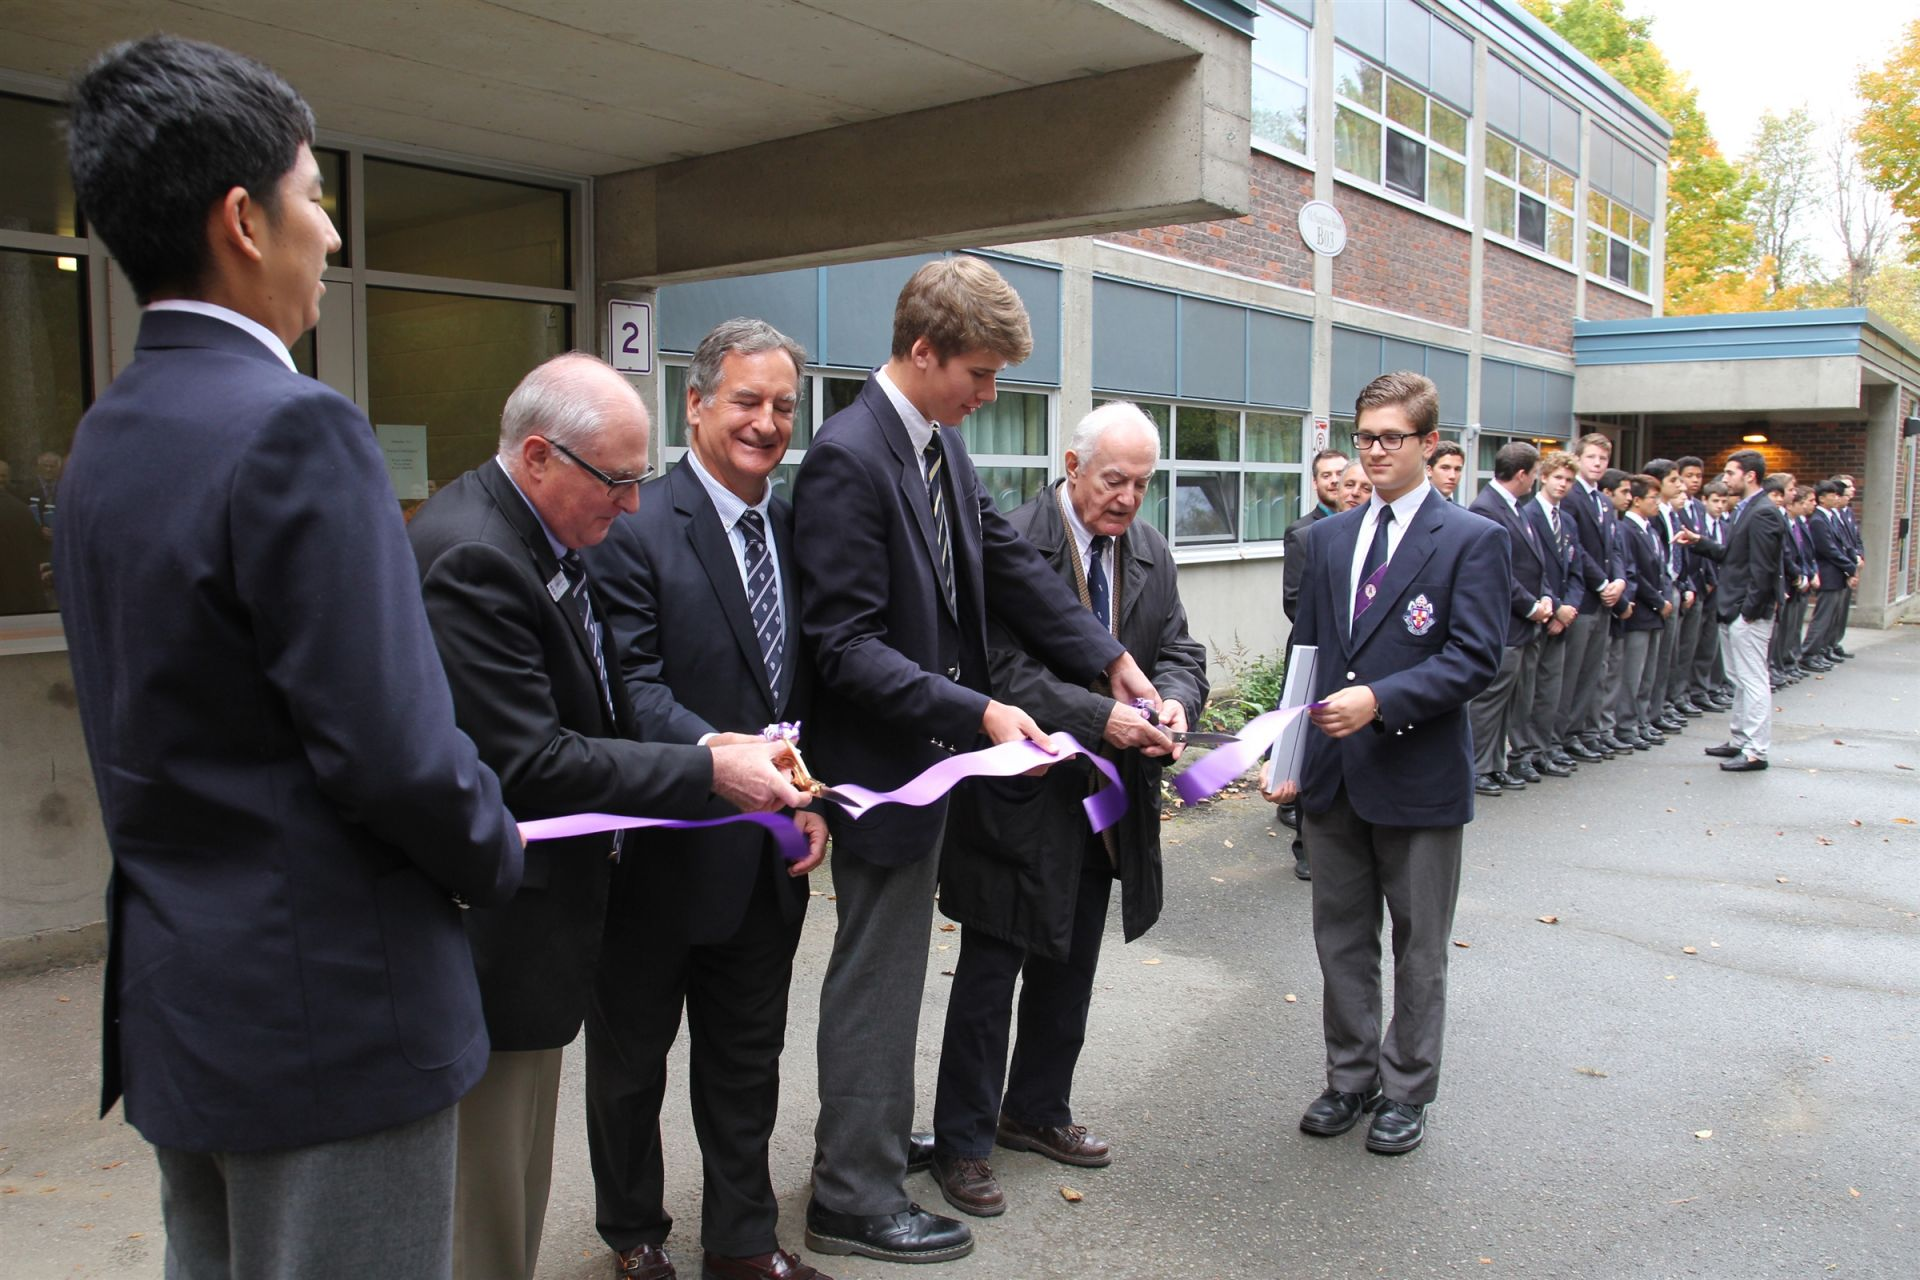 The ceremonial re-opening of McNaughton House after a complete renovation was completed in 2014. Cutting the ribbon at Head of School William Mitchell (BCS'63), Chair of the Board Tim Price (BCS'75), Head of House Brendan Barritt (BCS'15), and donor Scotty Fraser (BCS'46)